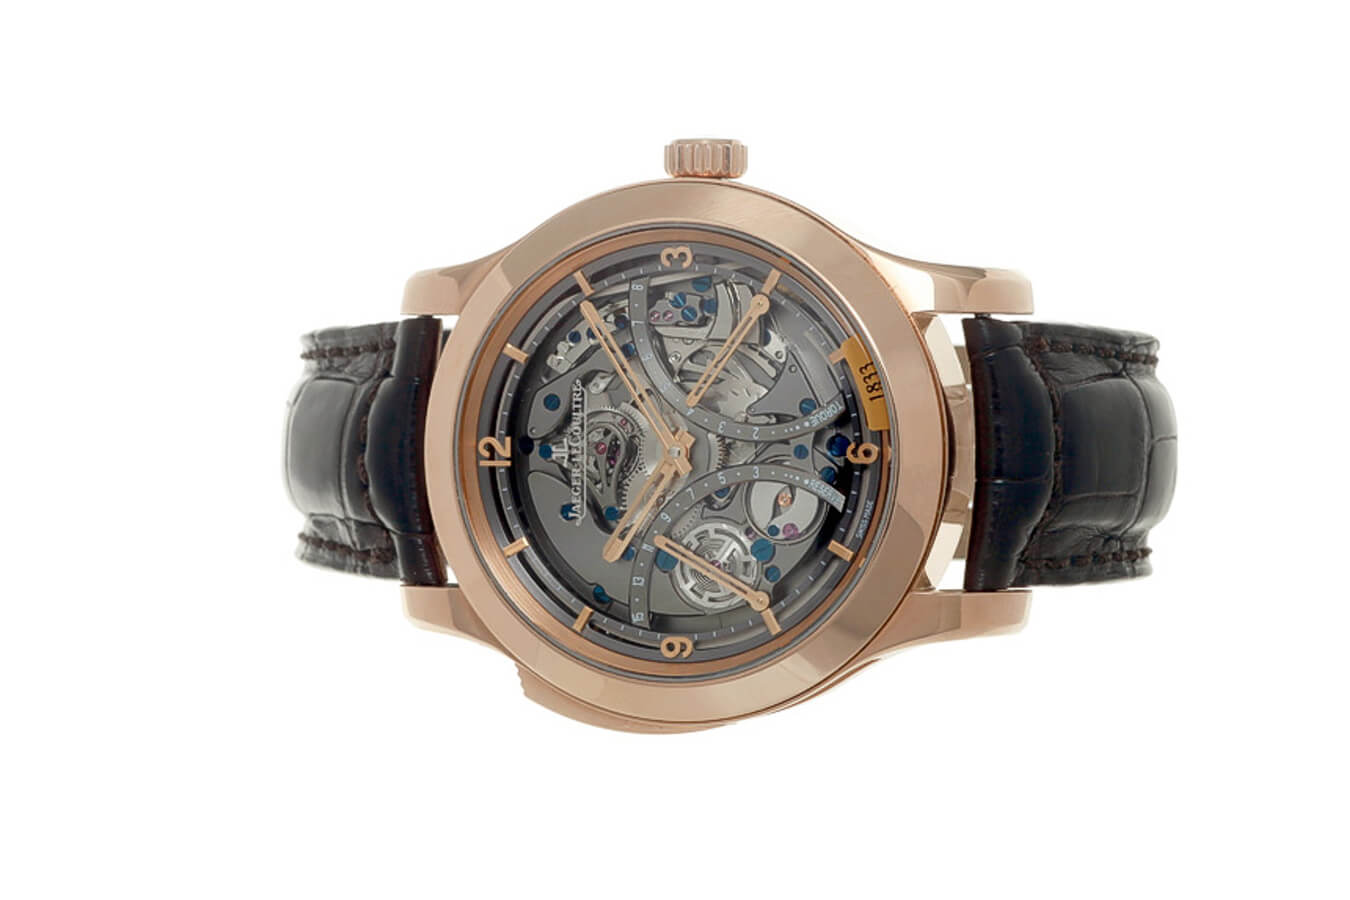 Đồng Hồ Jaeger LeCoultre Master Minute Repeater Q1642450